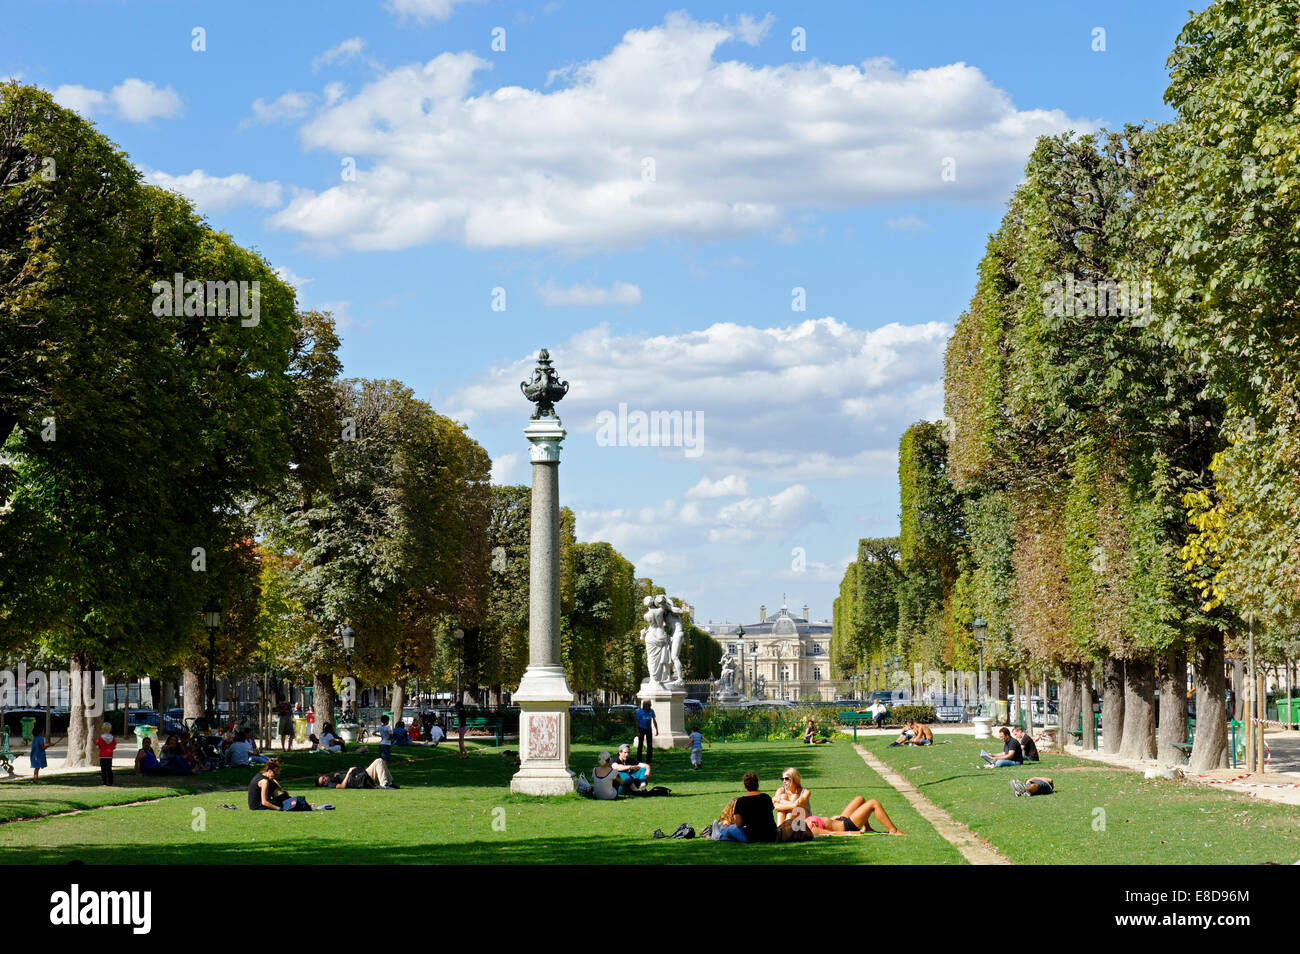 jardin du luxembourg 6th arrondissement latin quarter avenue de stock photo royalty free. Black Bedroom Furniture Sets. Home Design Ideas